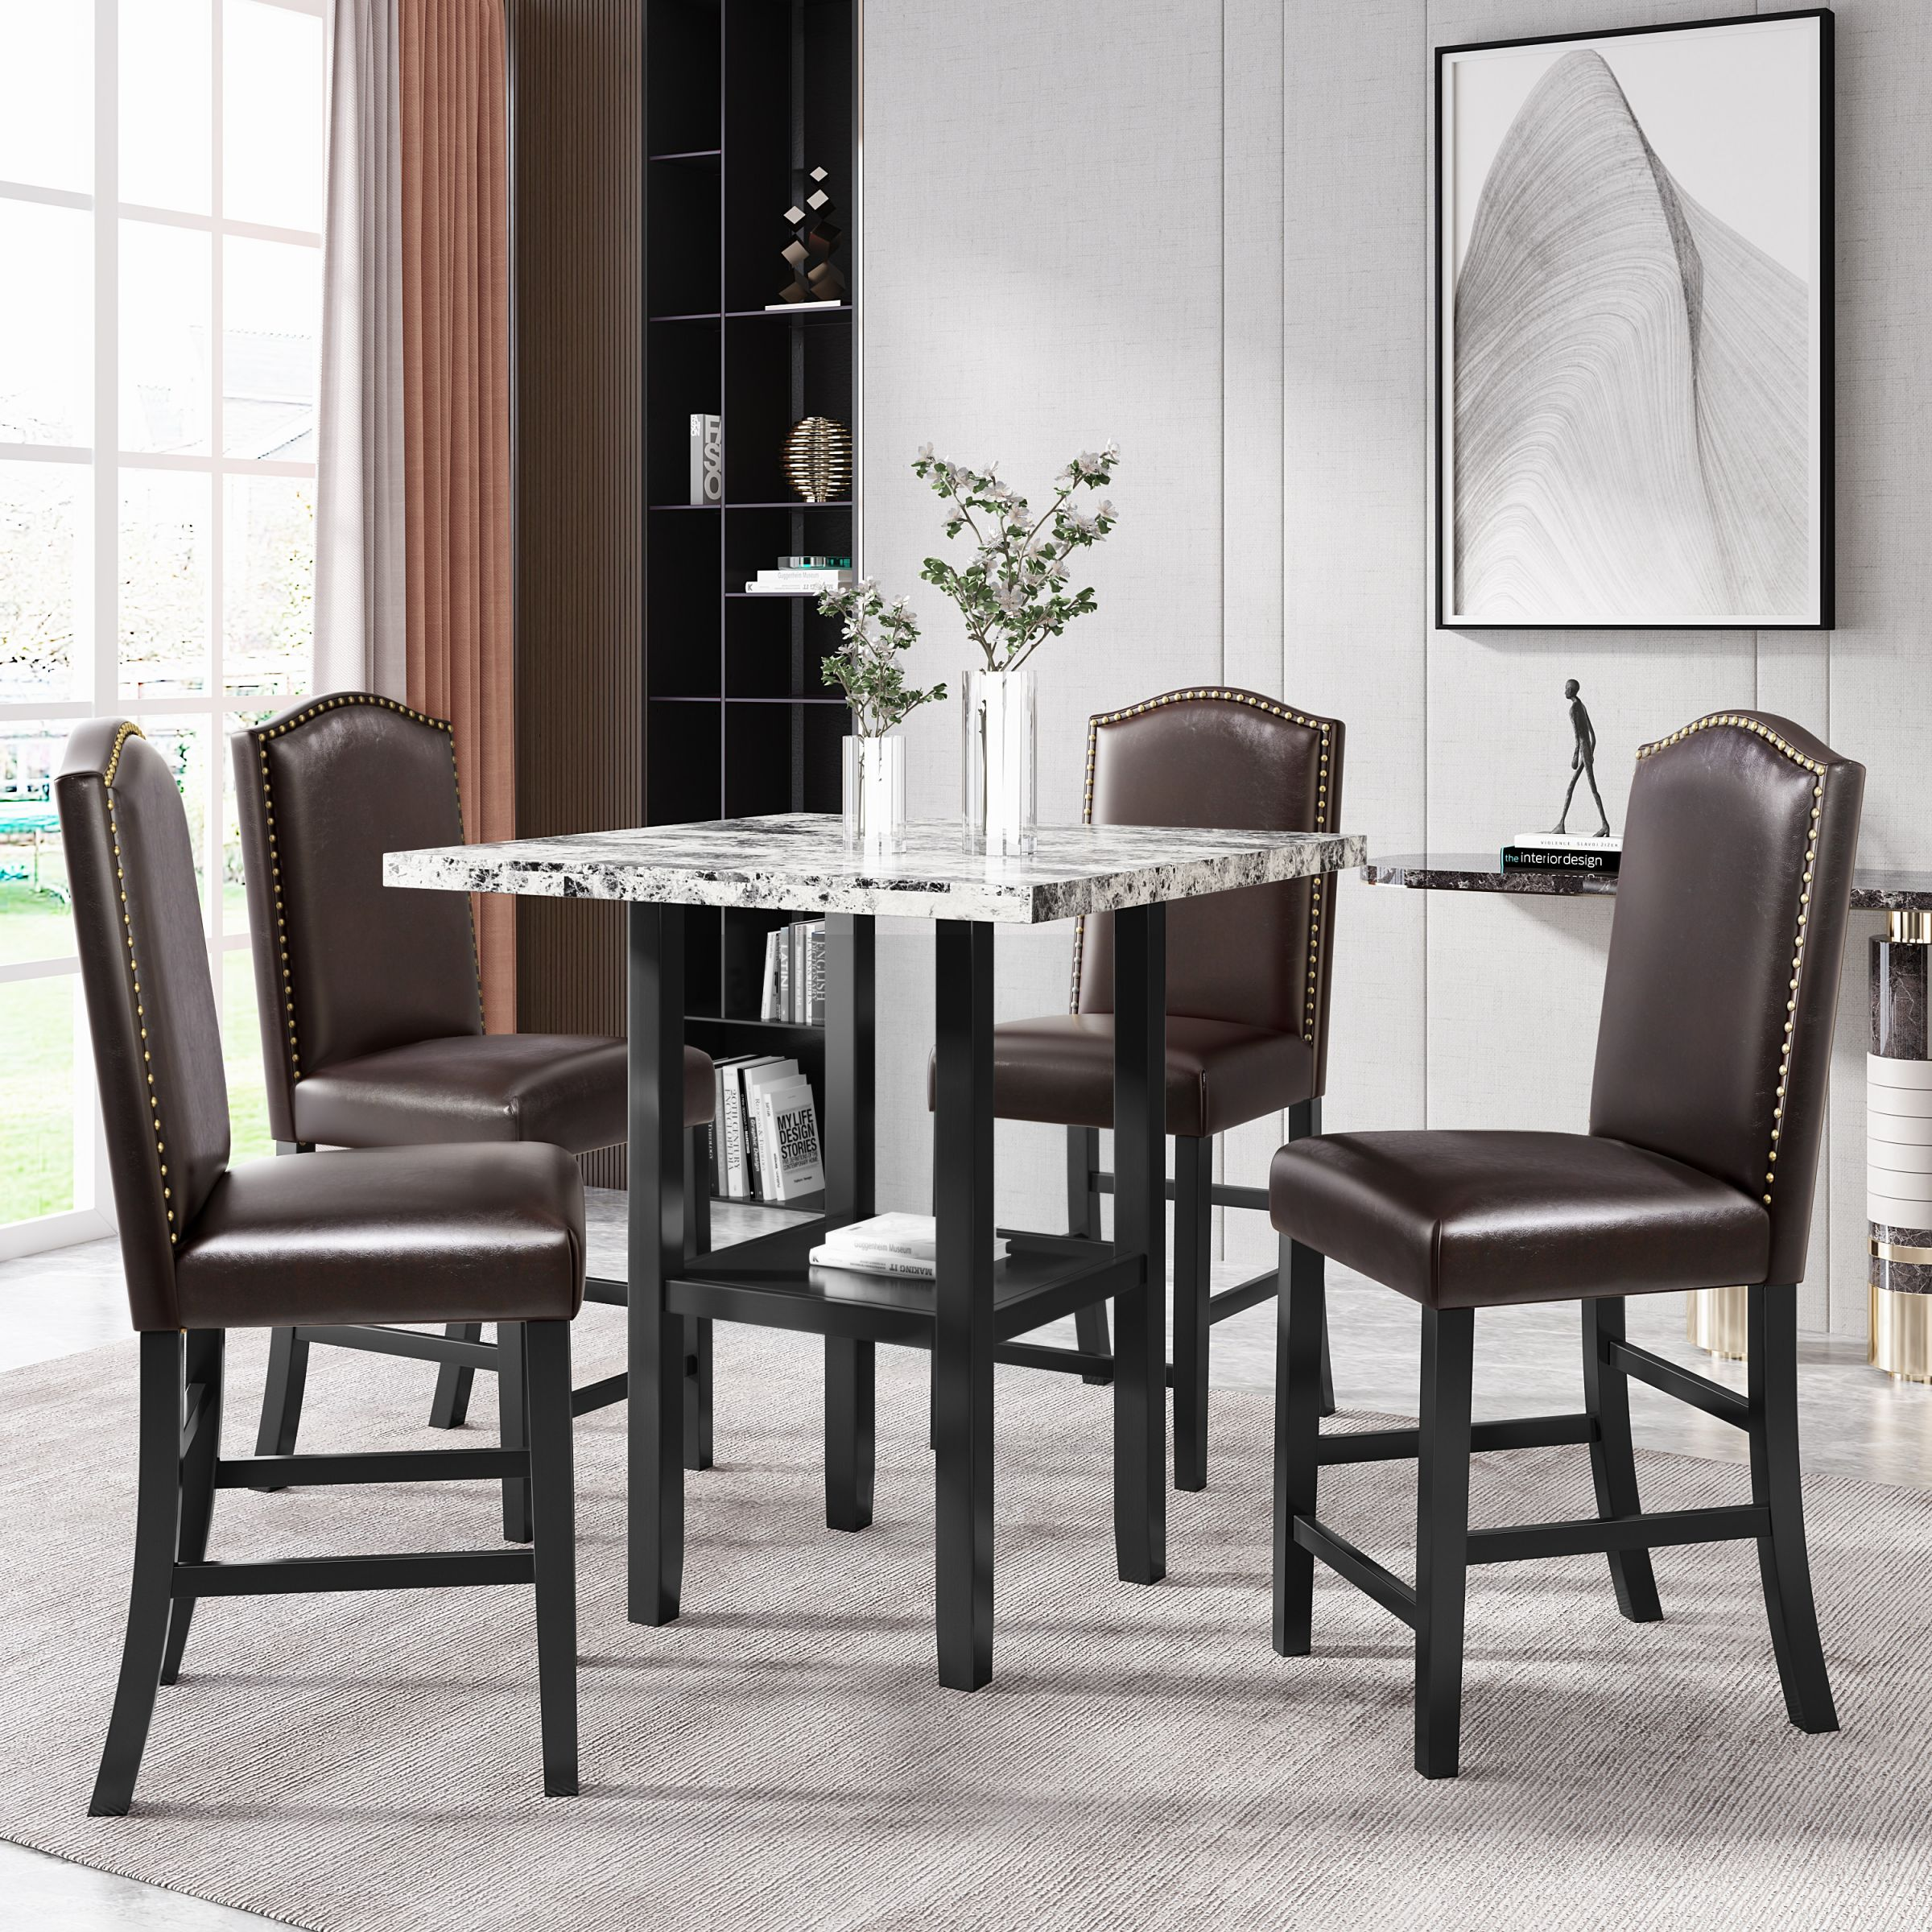 Awesome Kitchen Table And Chairs Heavy Duty